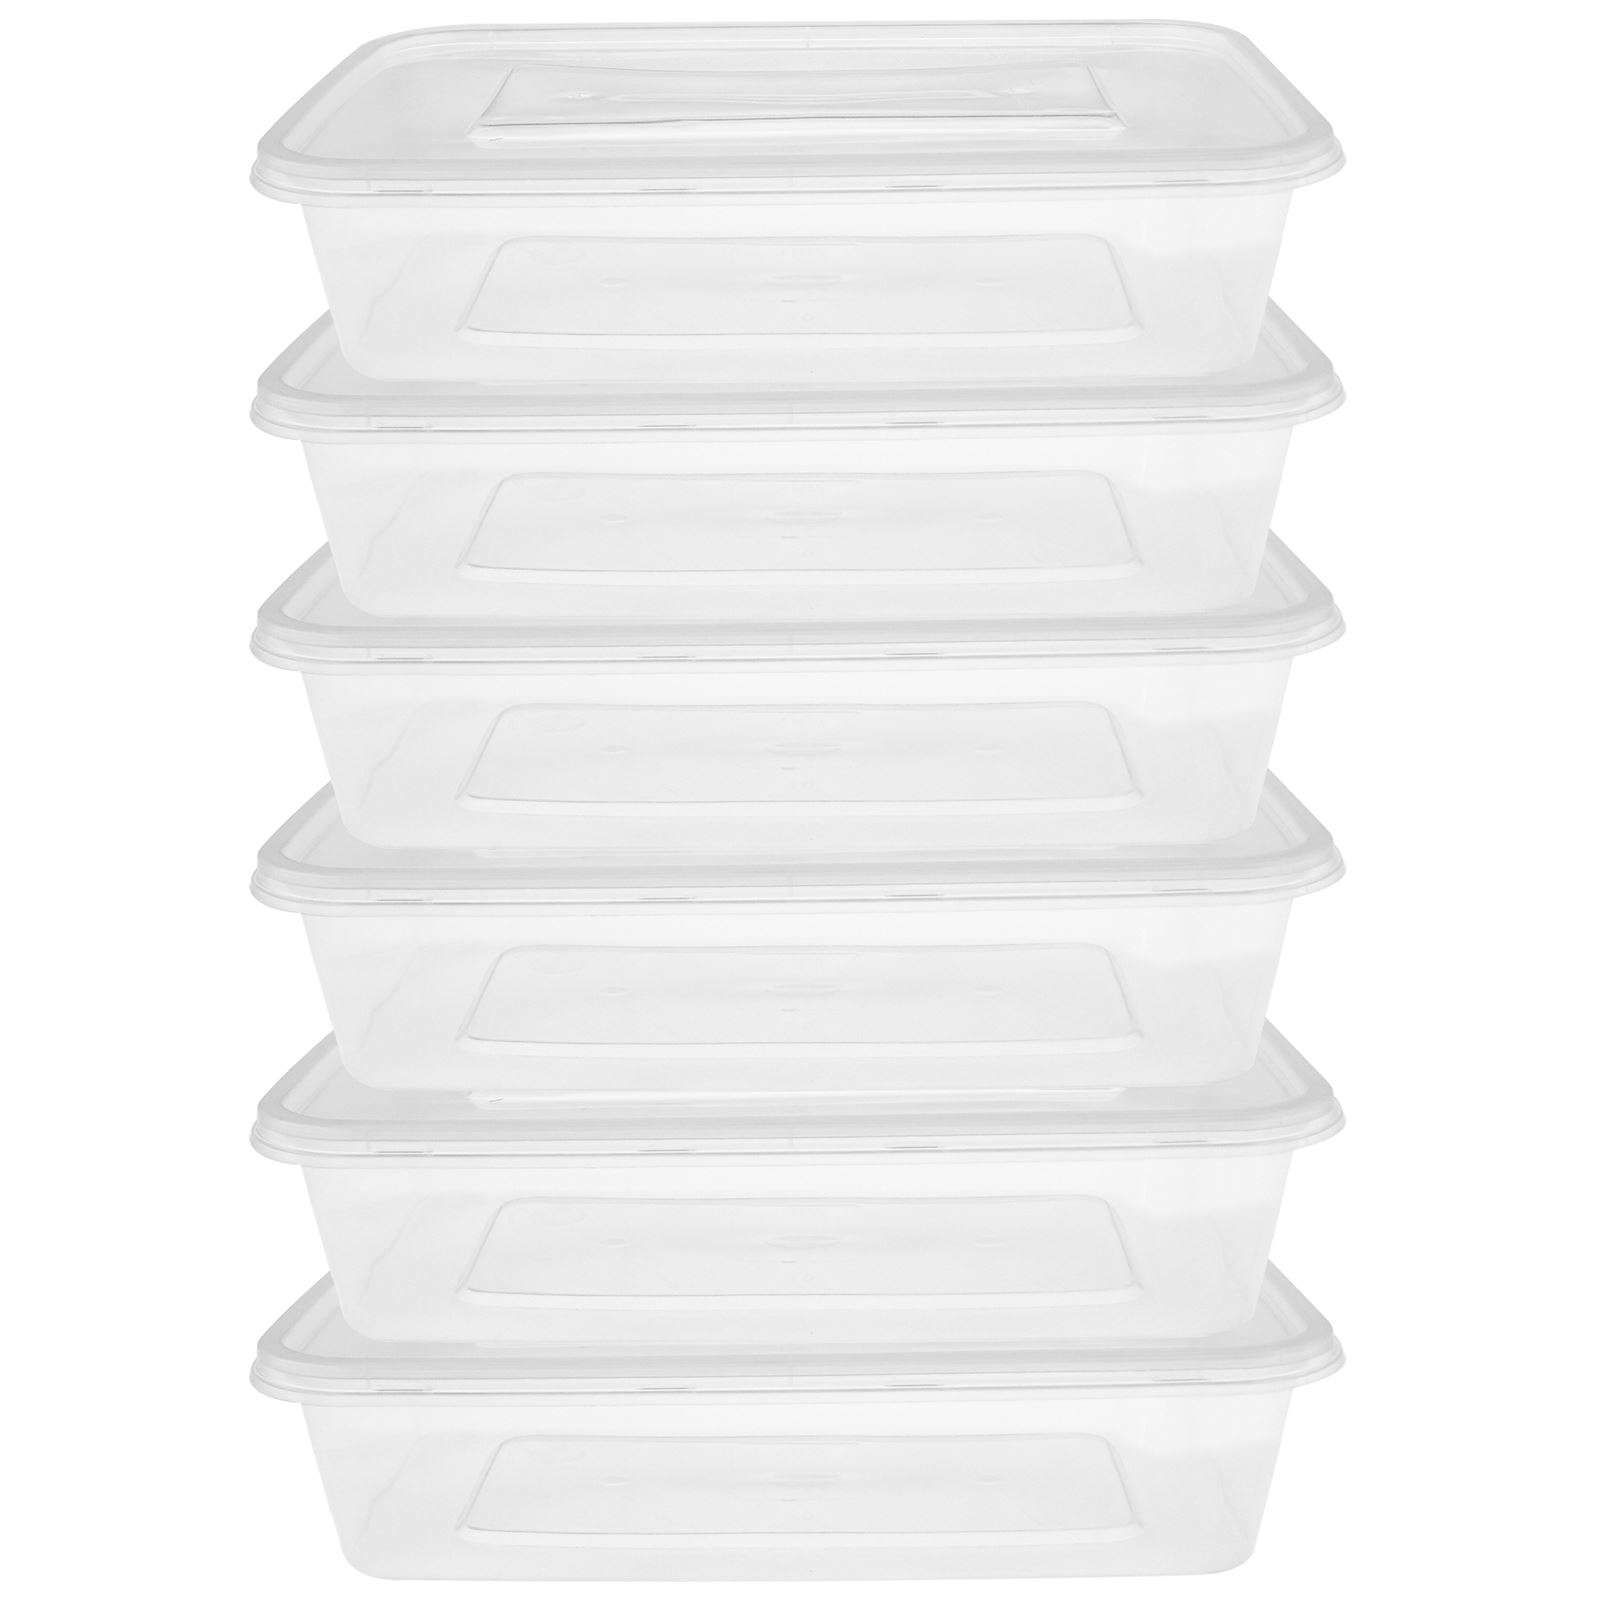 Small Clear Plastic Food Storage Containers With Lids